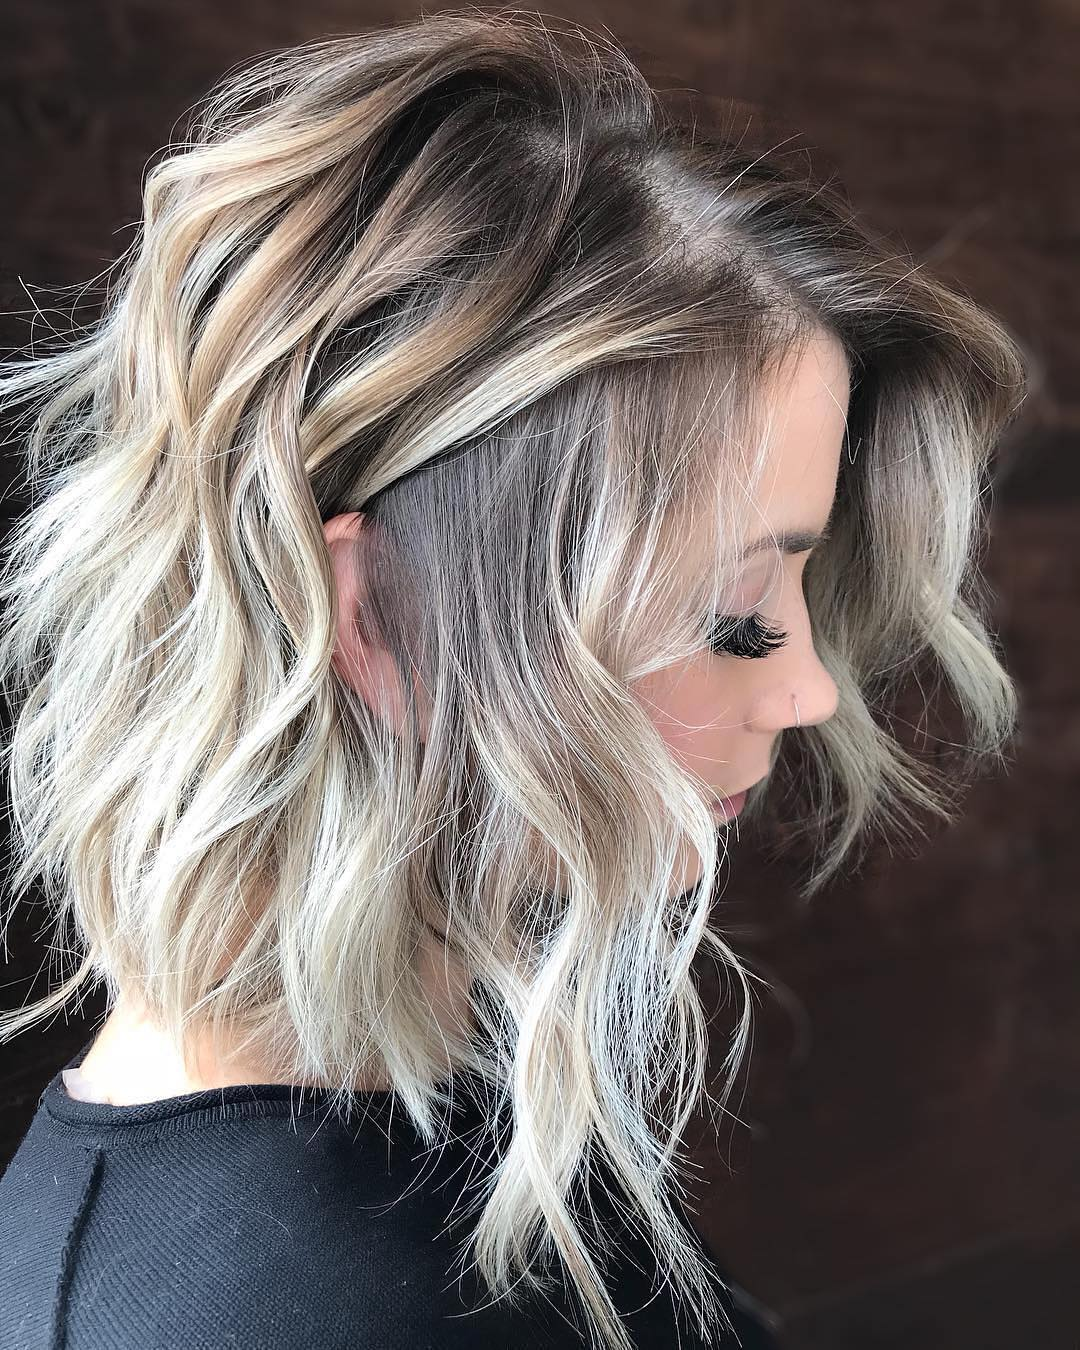 blonde ombre hair styles 10 ombre balayage hairstyles for medium length hair hair 4379 | stylish ombre balayage hairstyles for medium length hair medium hairstyle color ideas 59